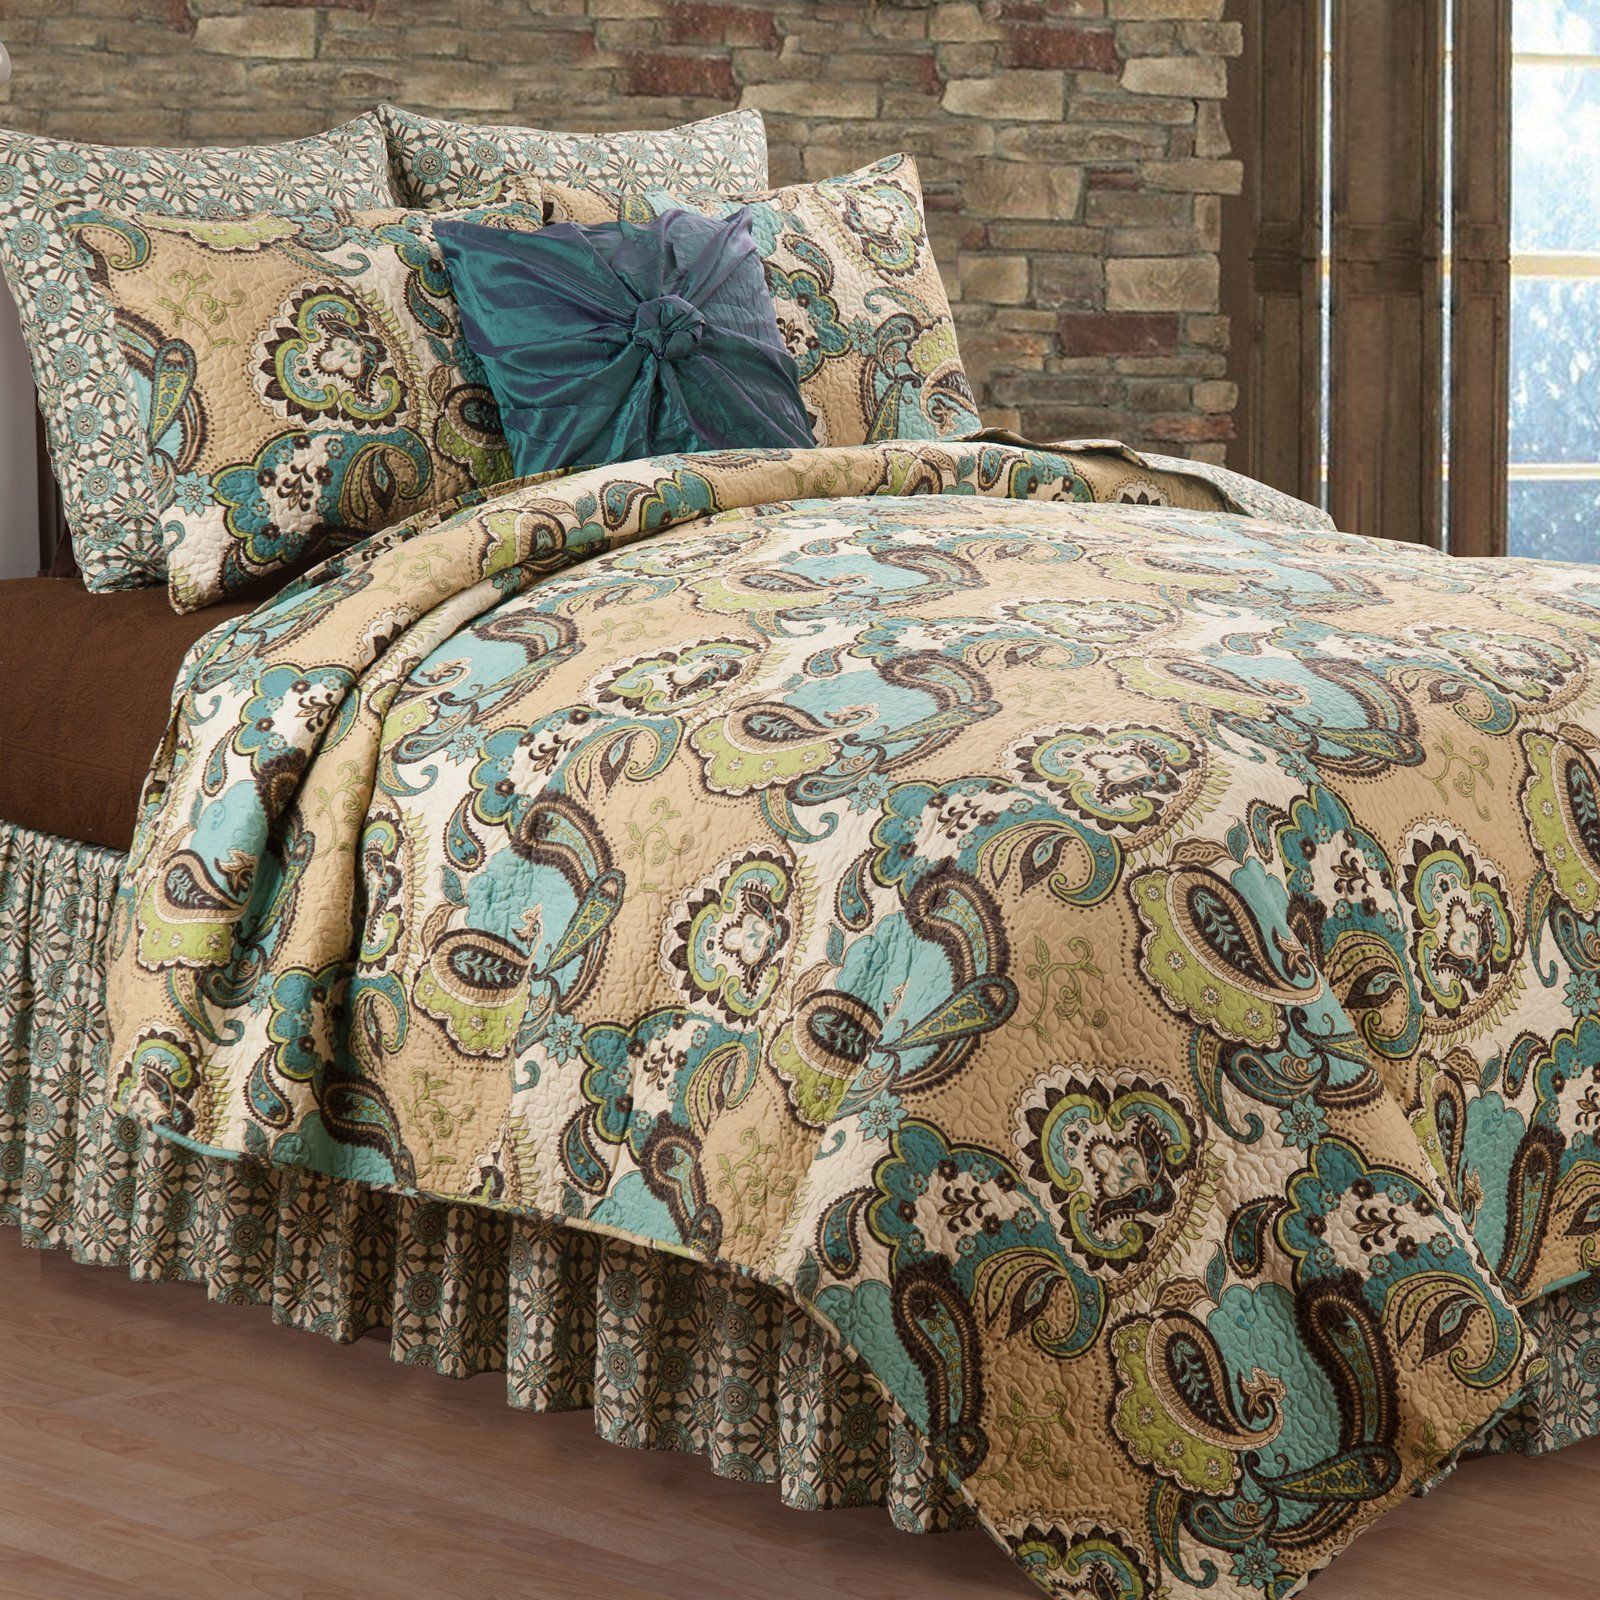 Weston Paisley Quilt Set By C F Home Quilt Sets Bedding Quilt